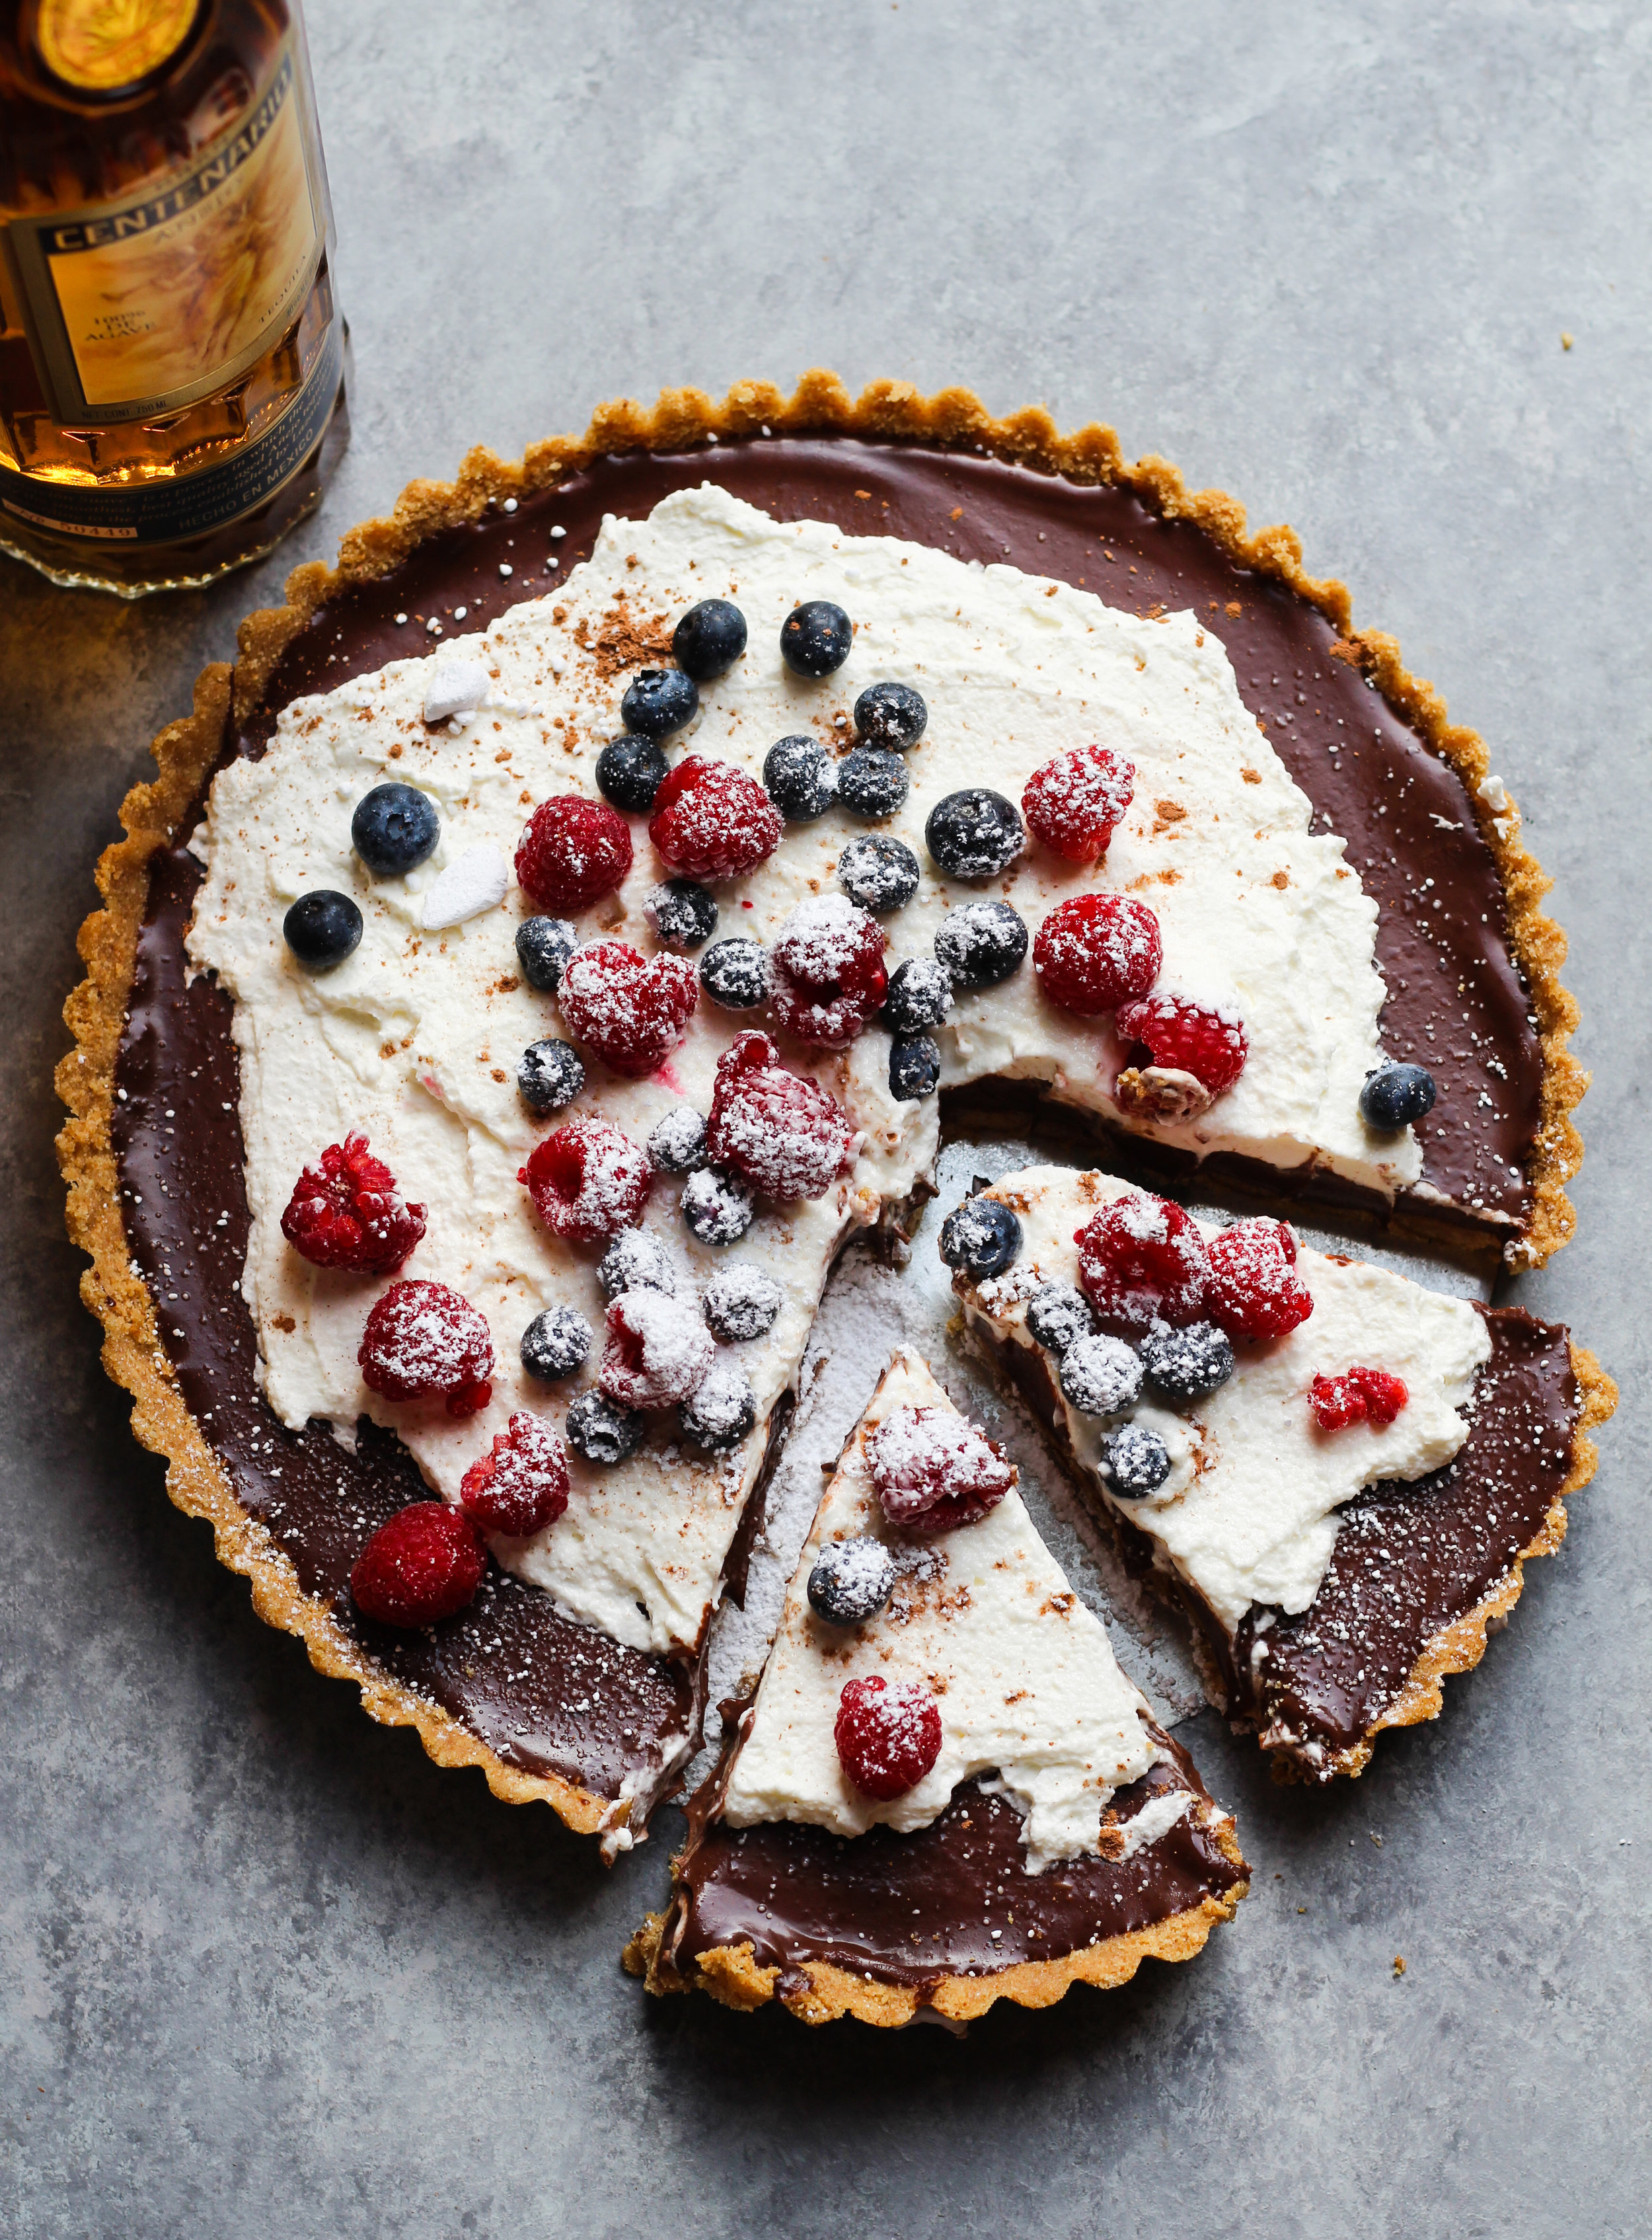 Spiked Mexican Chocolate Tart